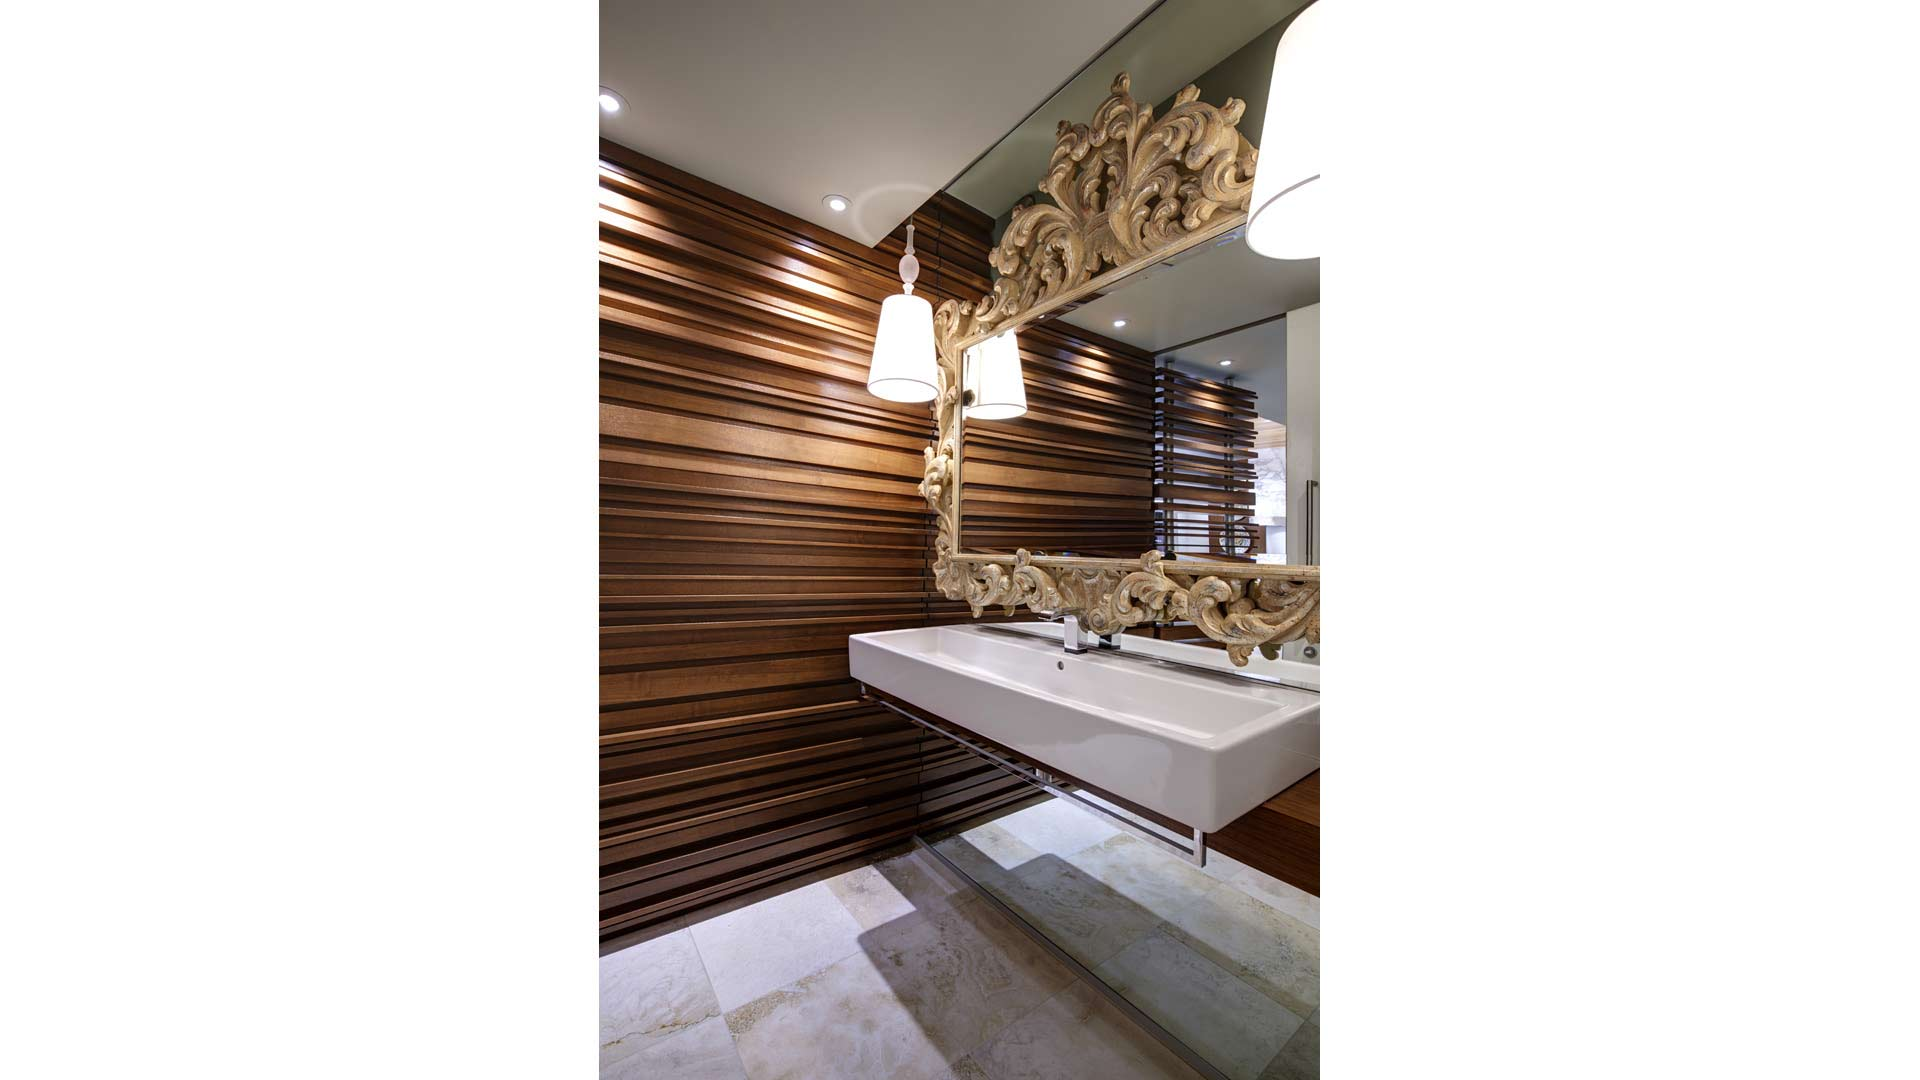 Adagio Penthouse Interior - Powder Room - Walnut Wall Detail - HAUS Architecture, Christopher Short, Indianapolis Architect